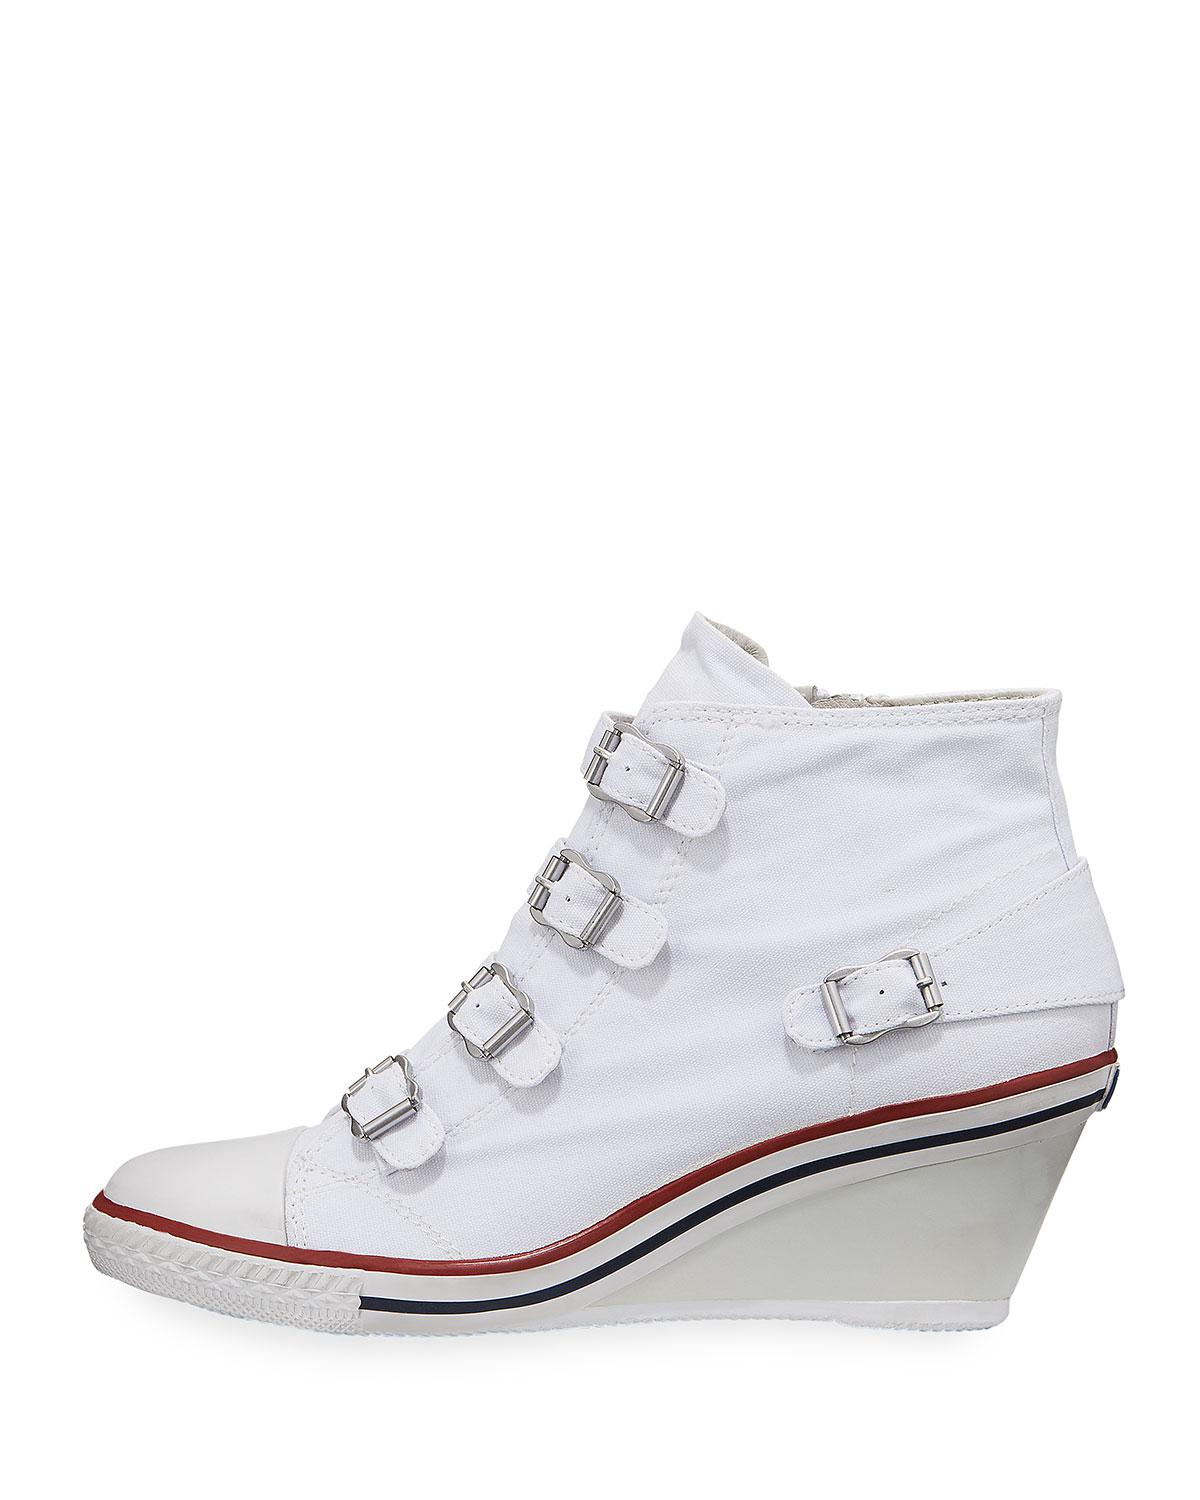 8036c4a7ff9e Lyst - Ash Genialbis Buckled Wedge Sneakers